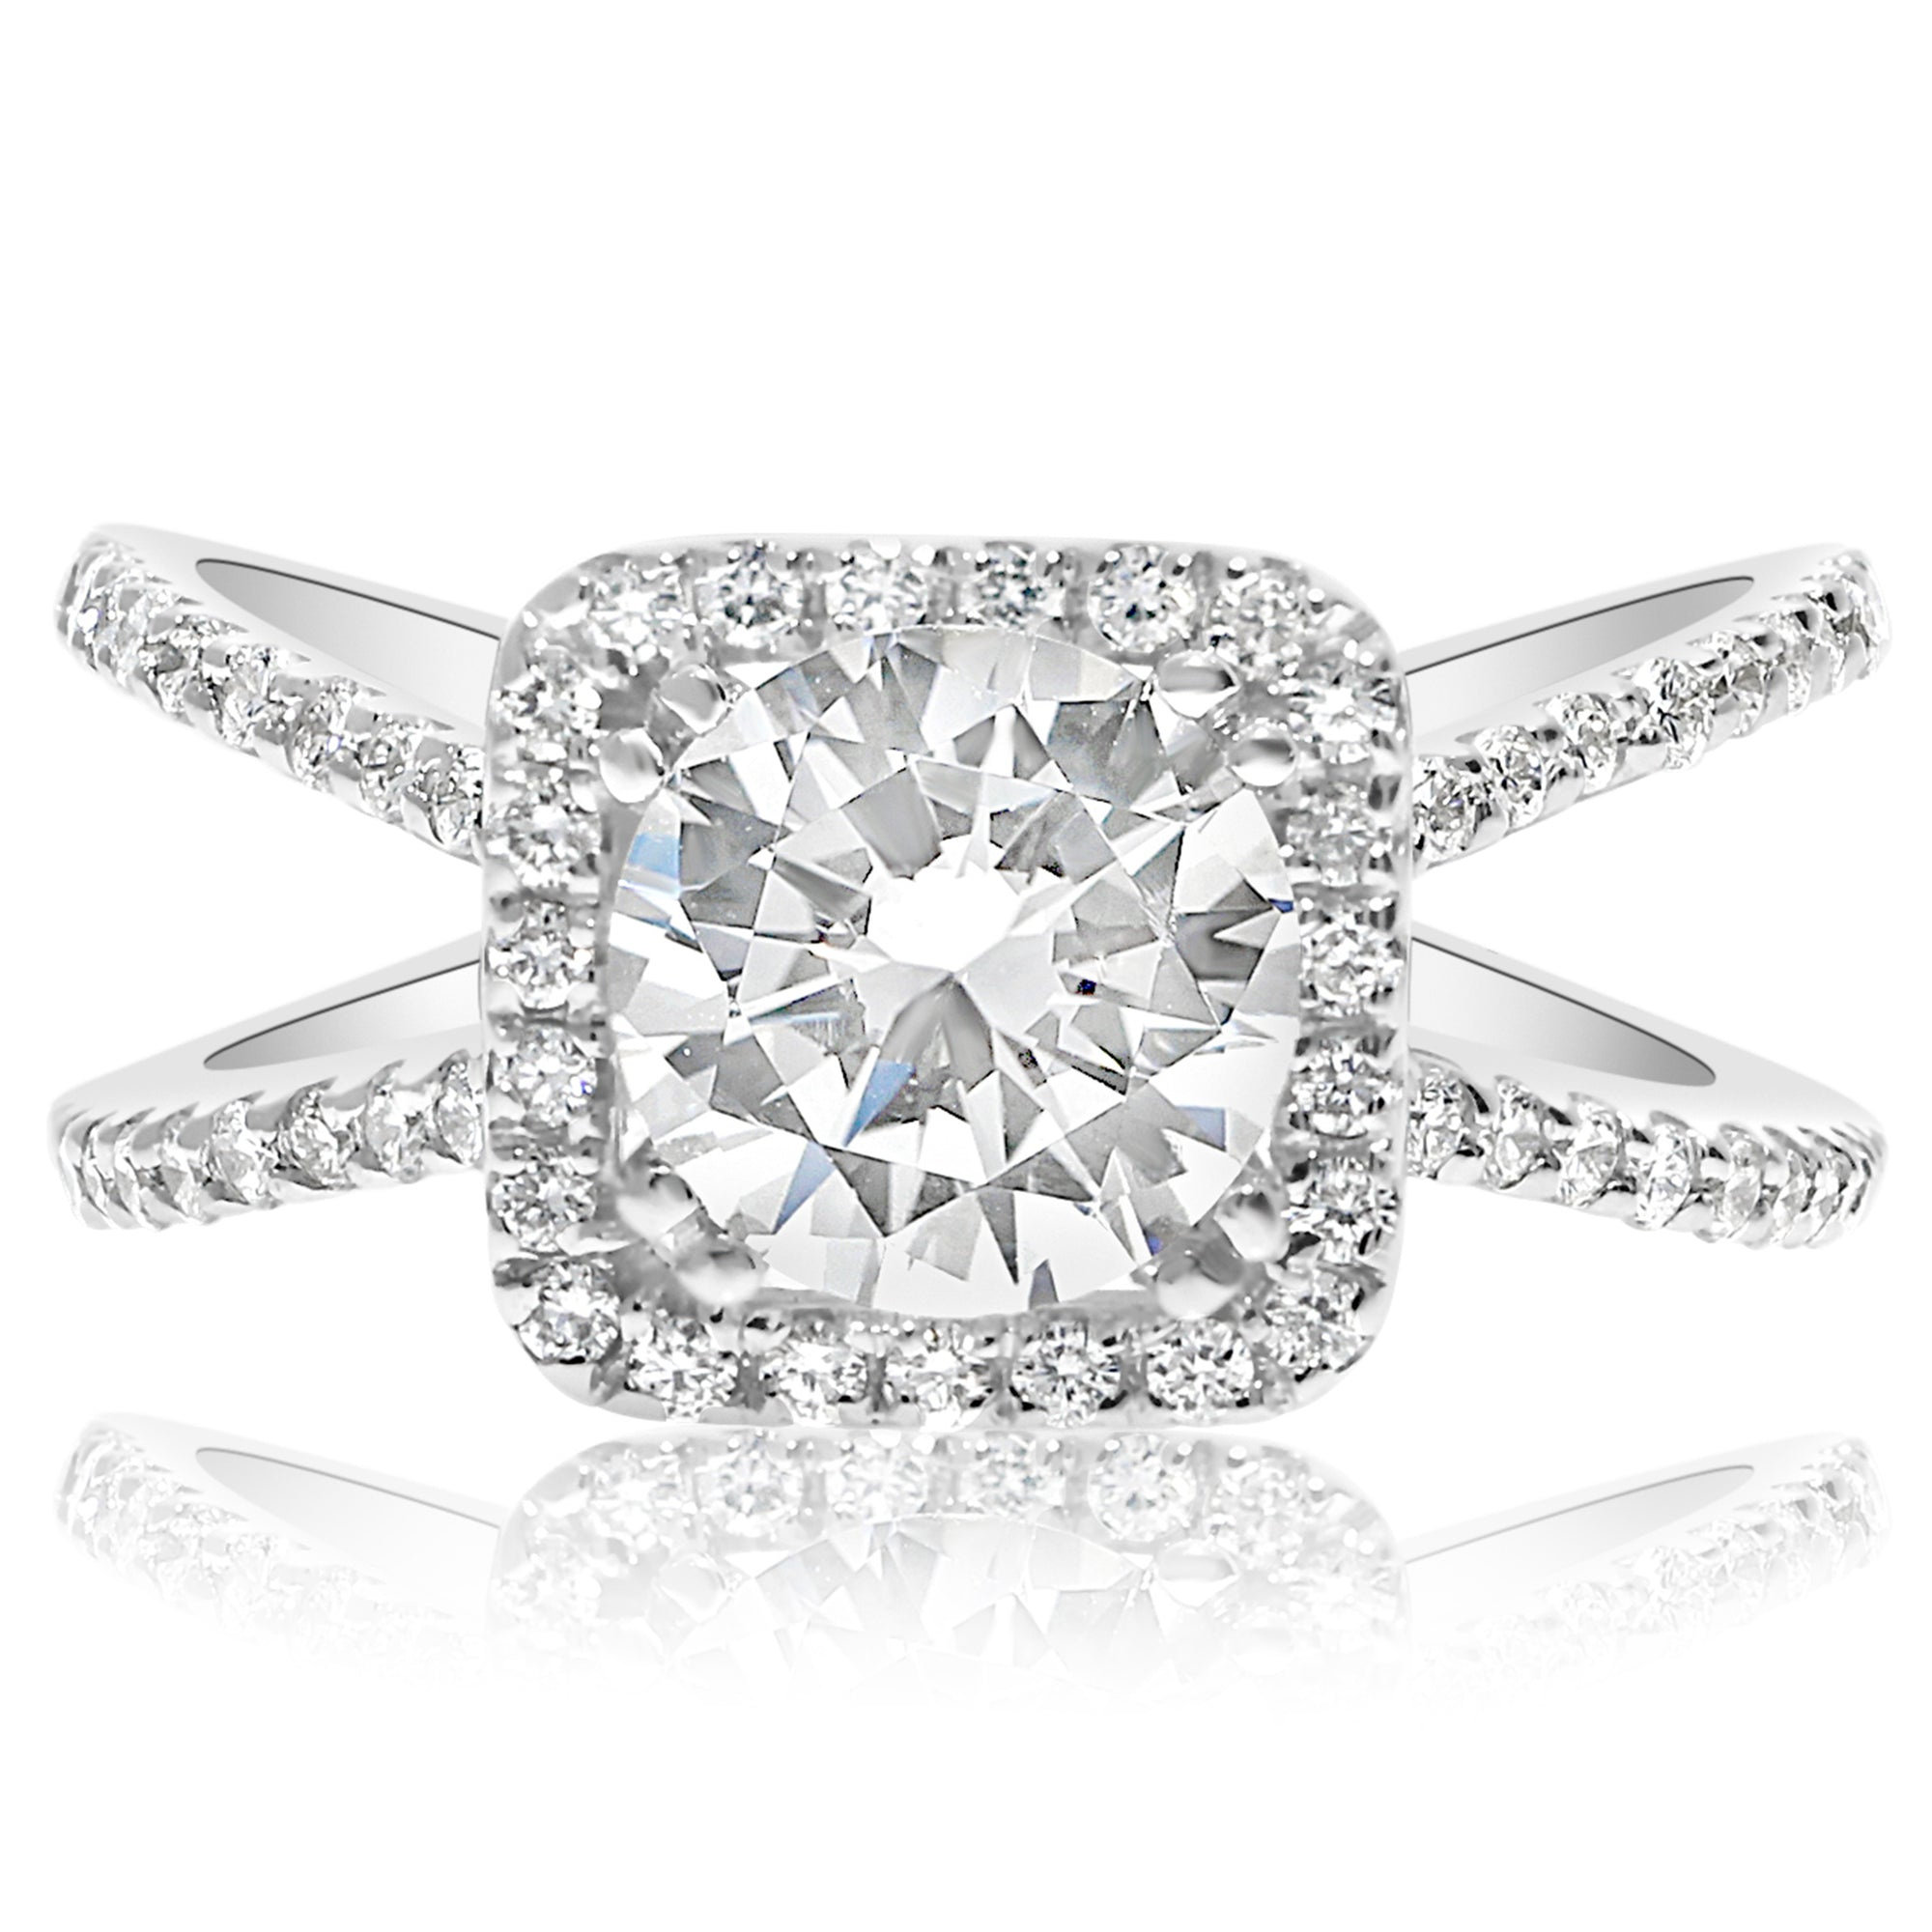 style diamond rounded gold prongs band half with cut product rose eternity in brilliant wedding